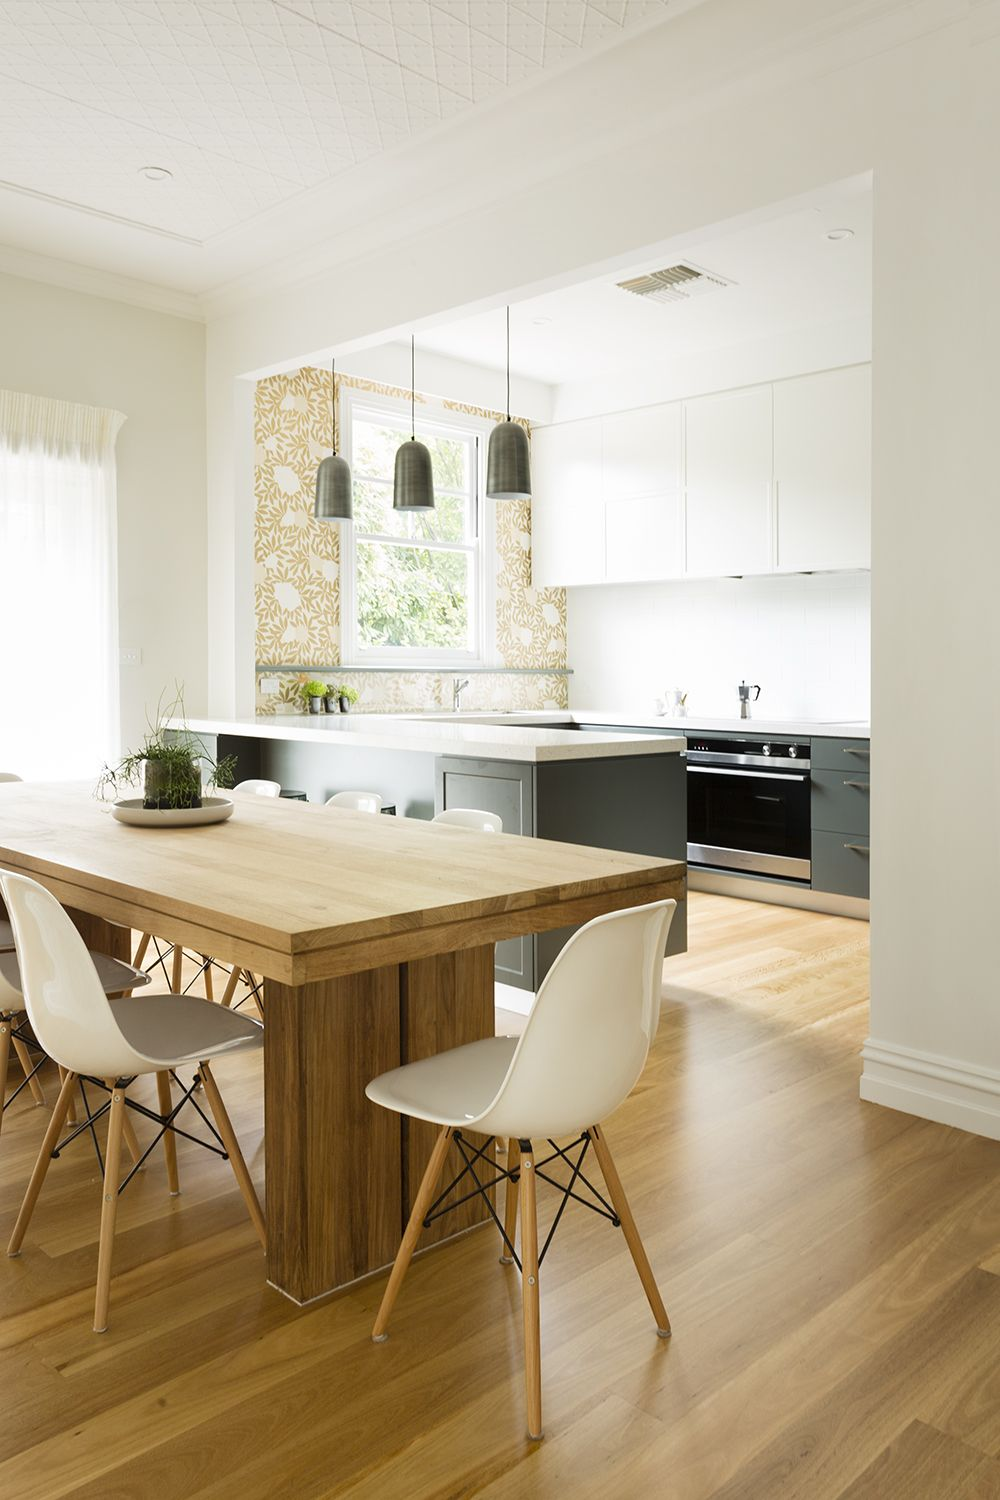 Interior design decoration melbourne meredith lee also kitchen and dining with wallpaper by rh pinterest